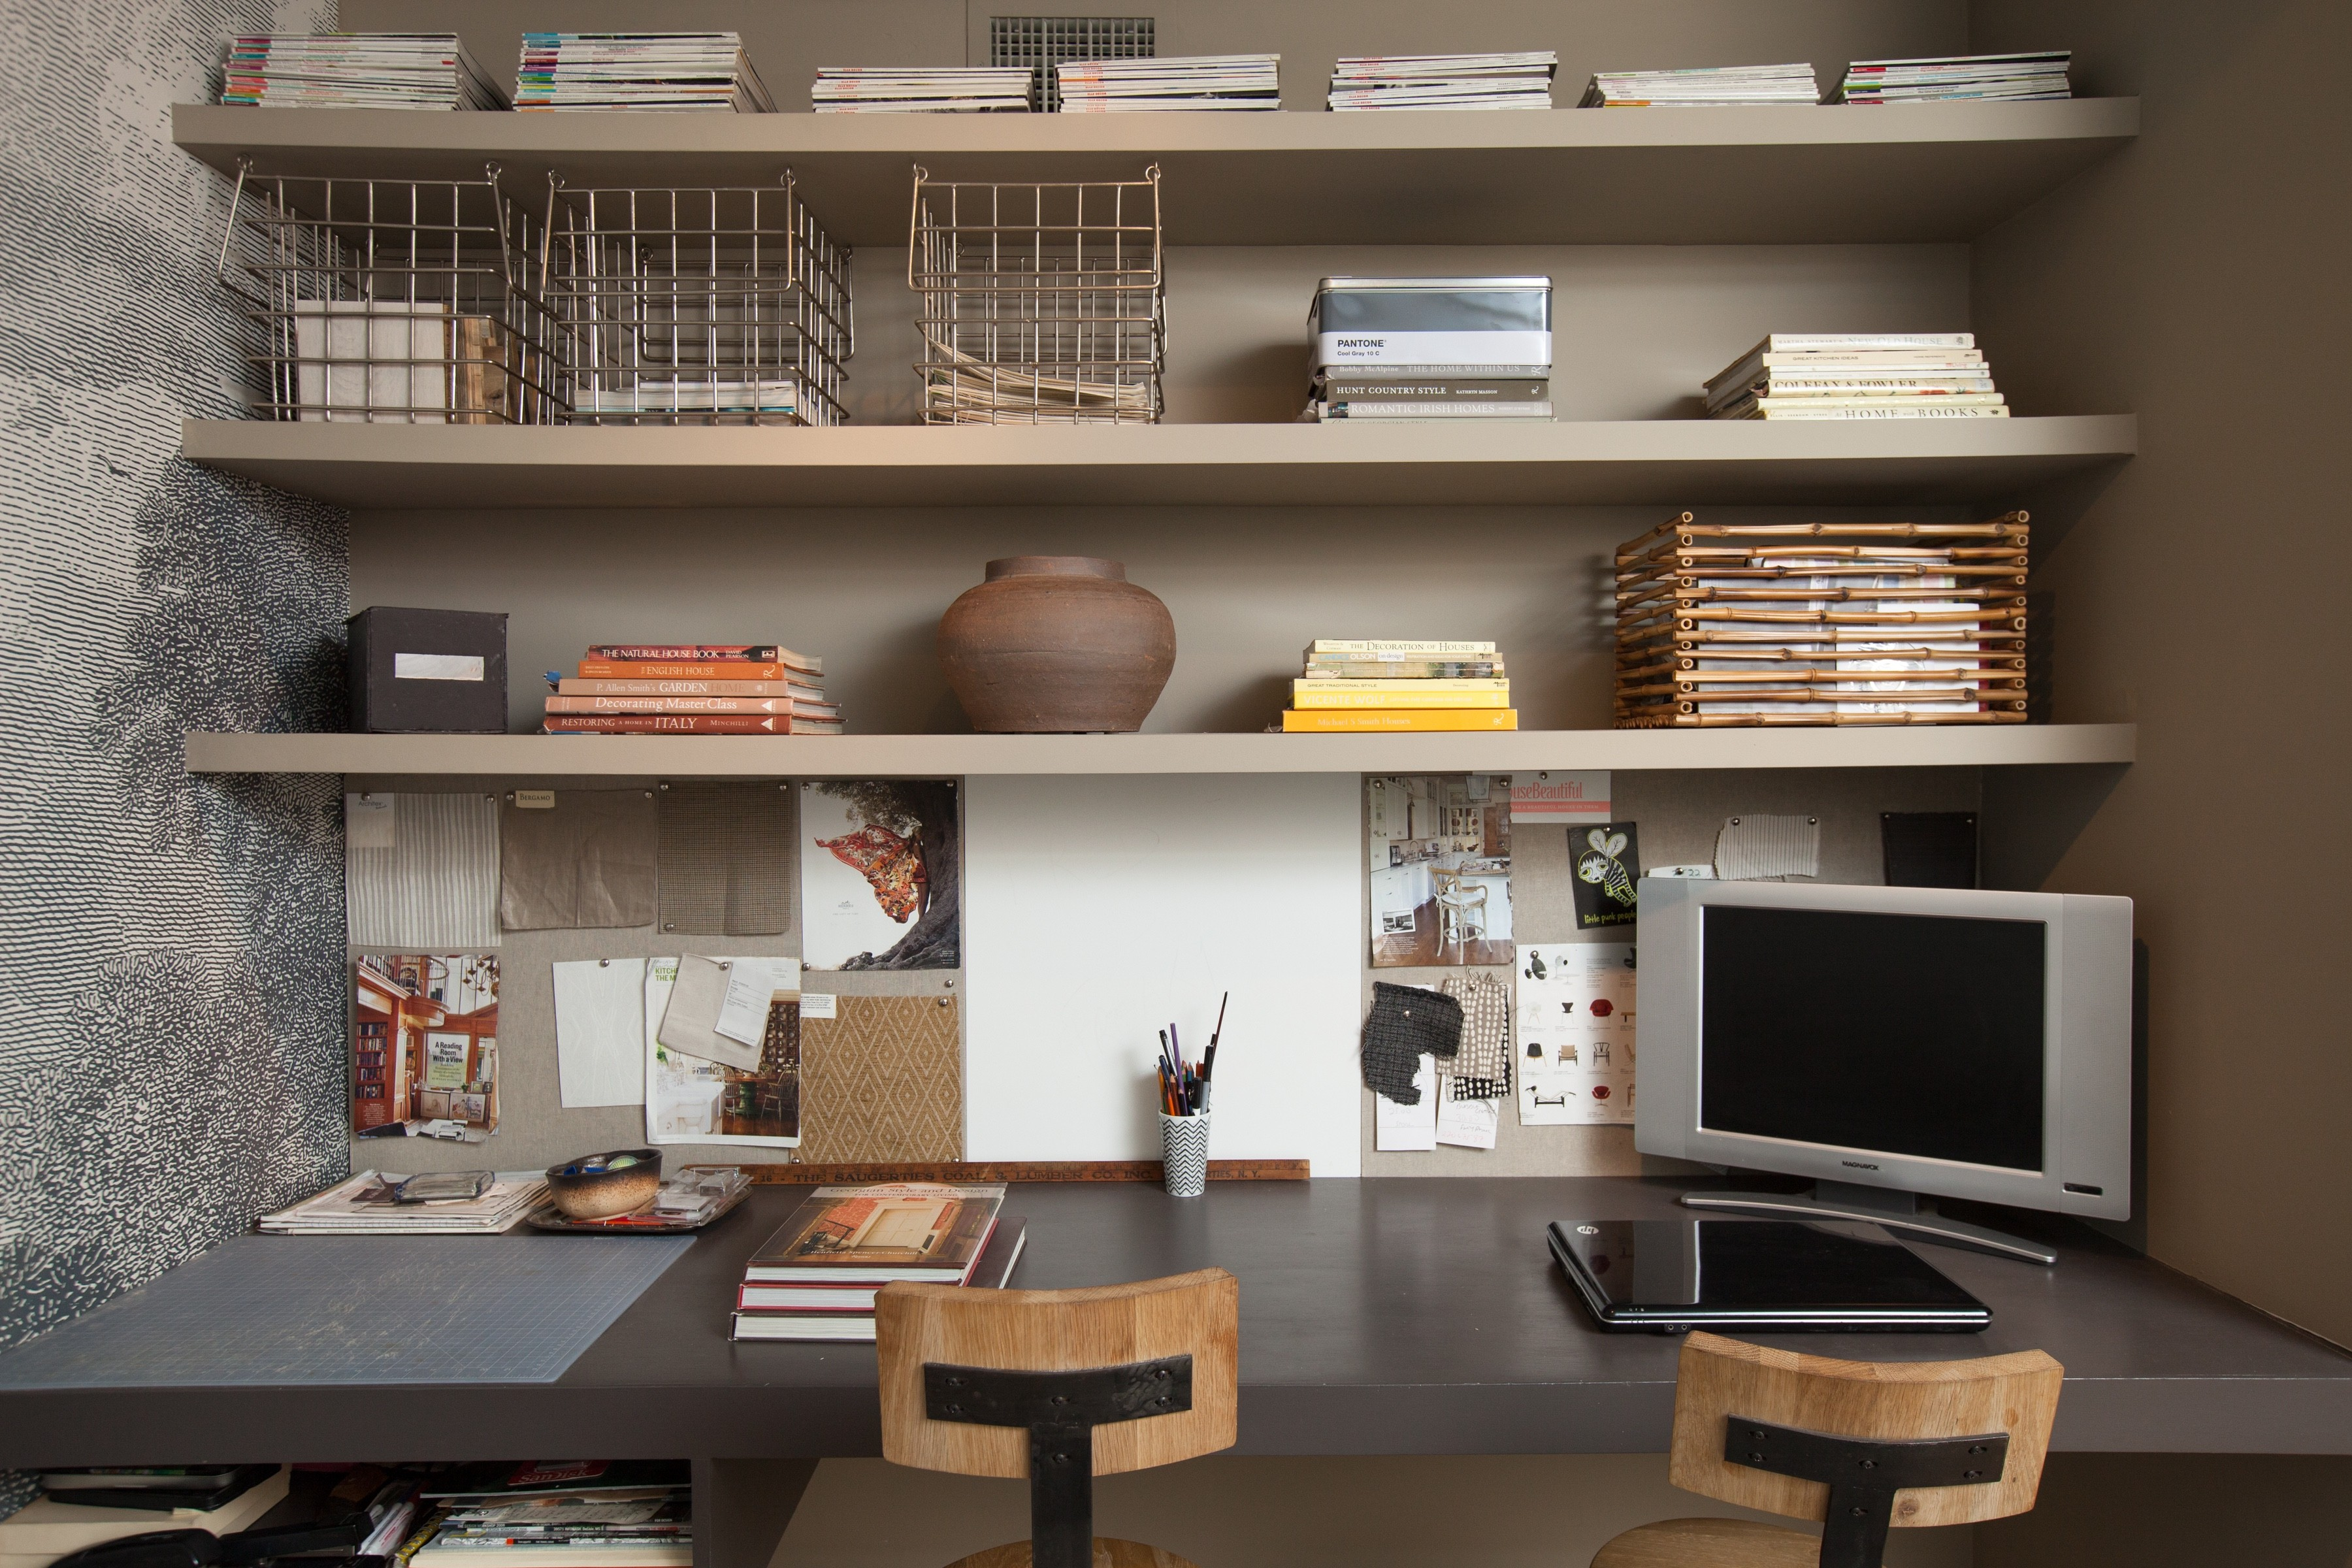 Stay At Home Office Designers On How To Create A Workspace In Lockdown Design Decor Hudson Valley Chronogram Magazine